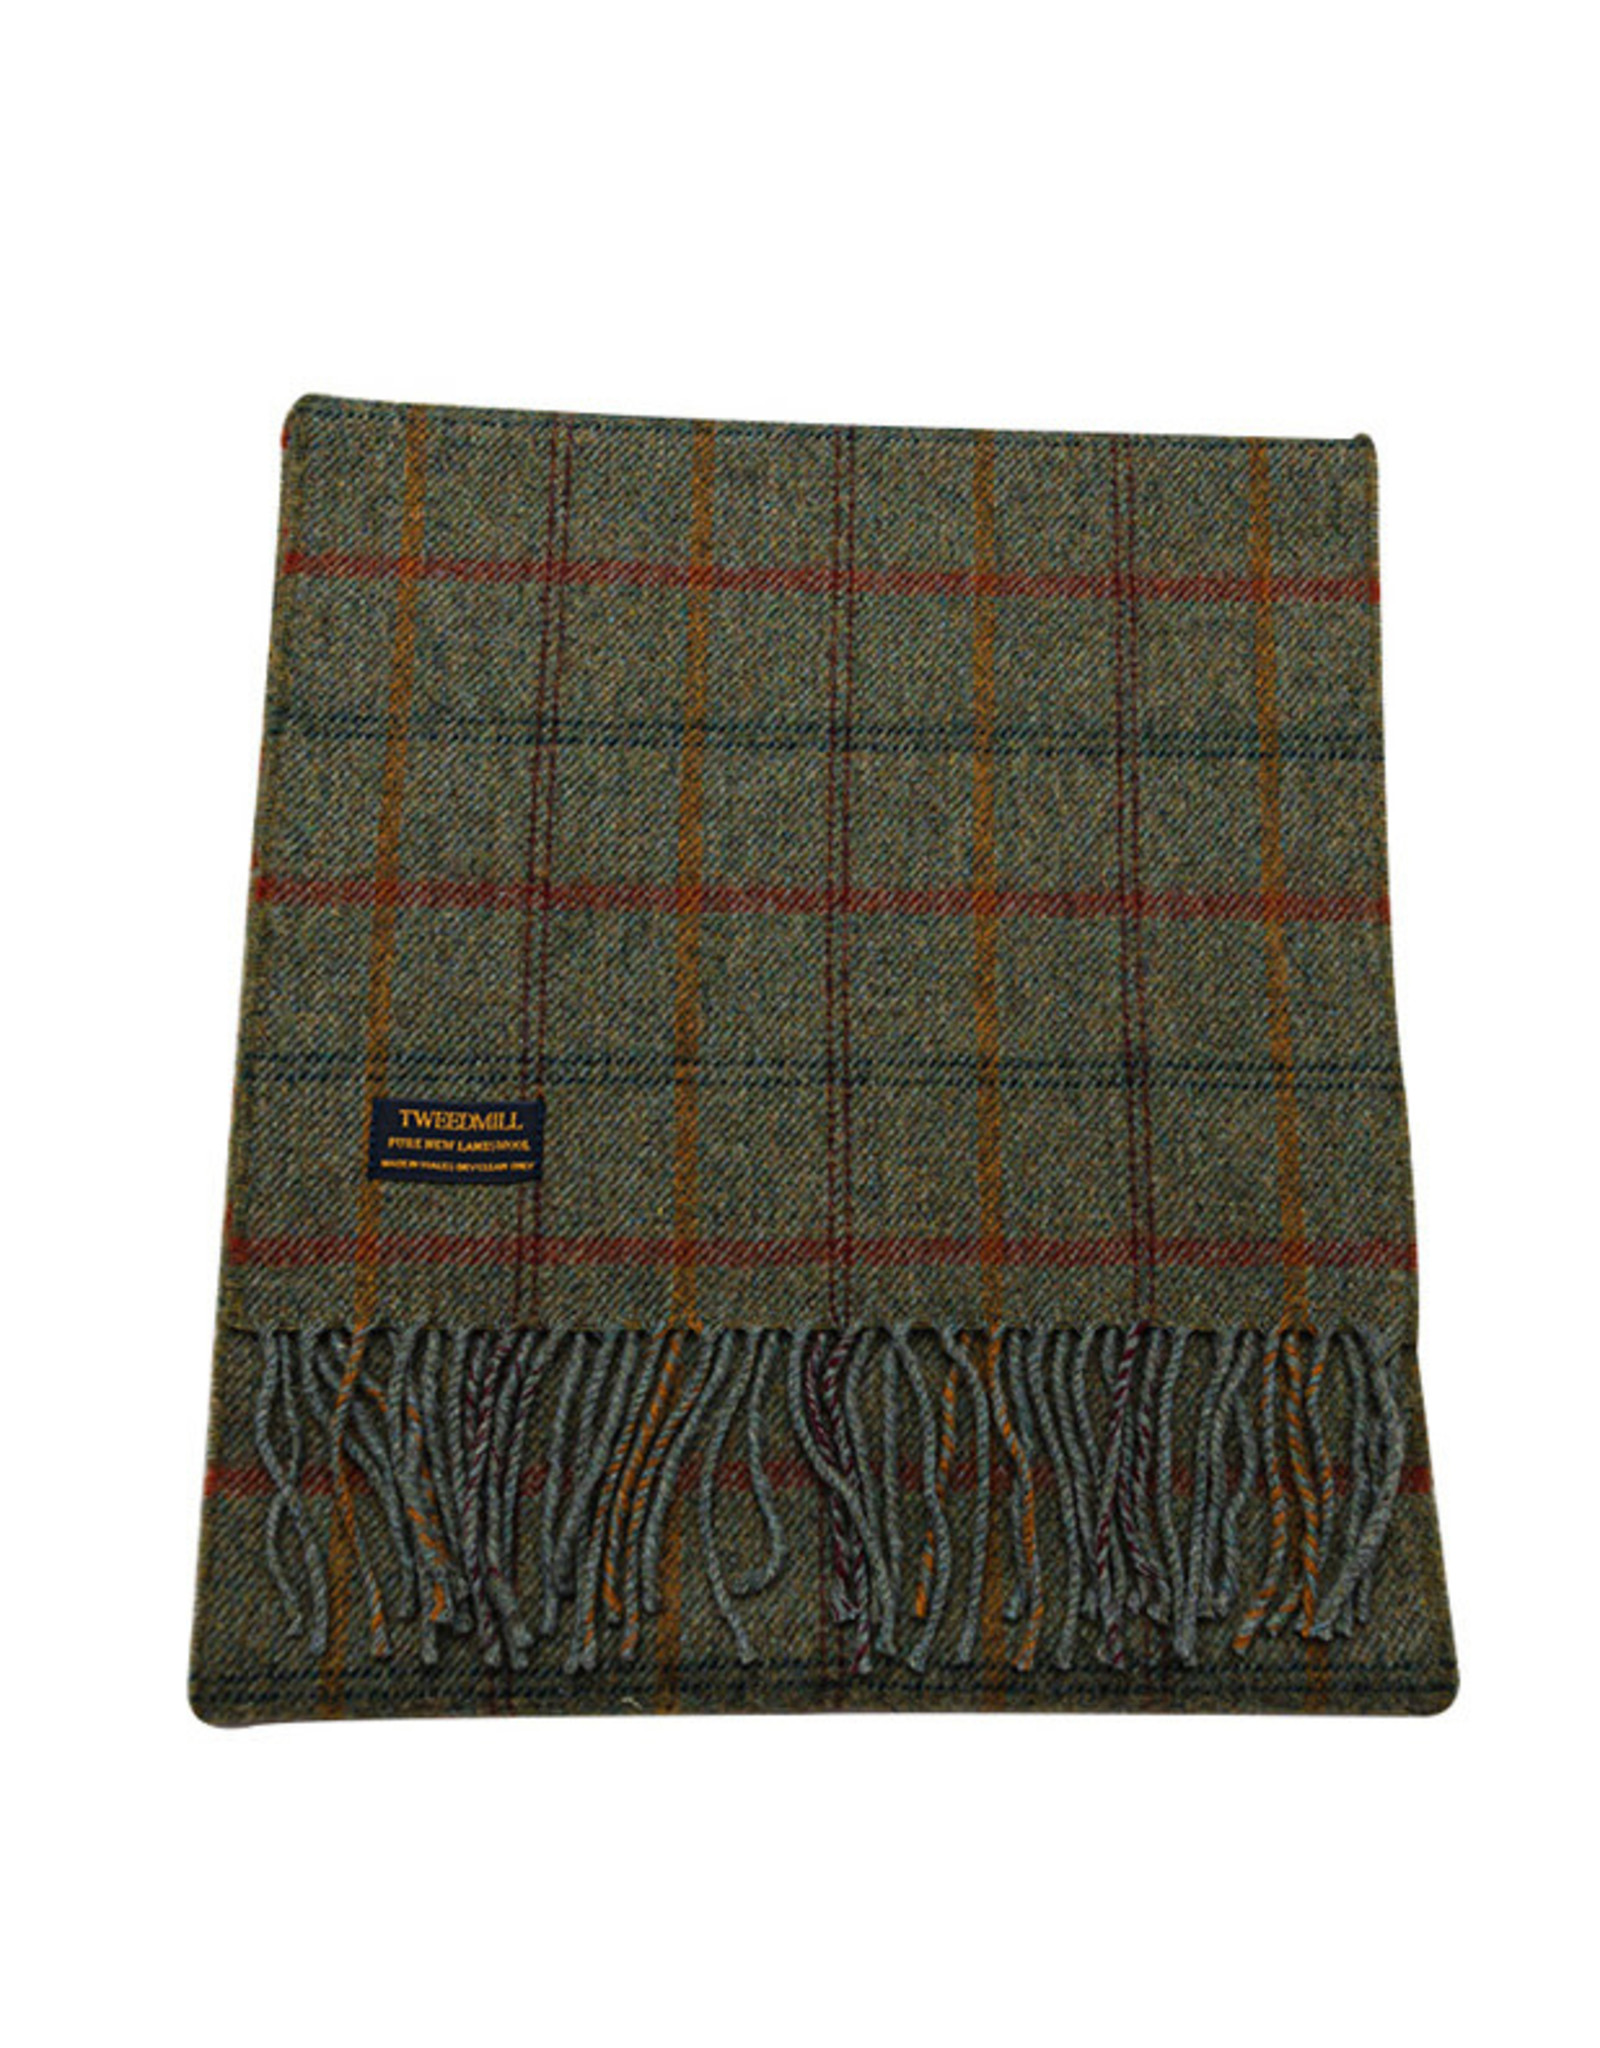 Lambswool Fring Scarf - Country Check Sage